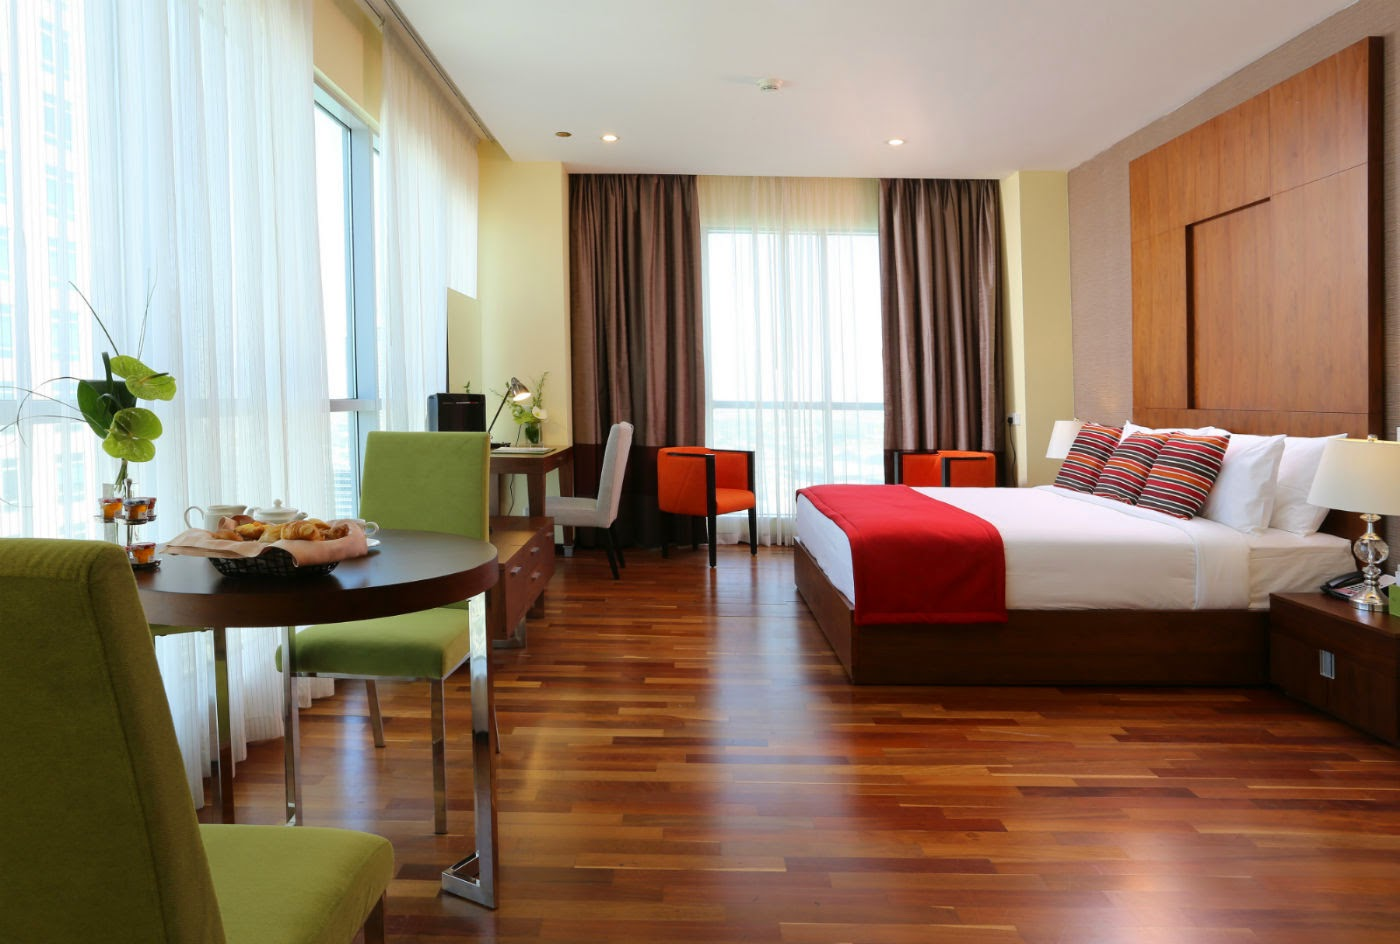 The Ramada Downtown Dubai is located in the emirate's ultra-popular and trendy downtown district